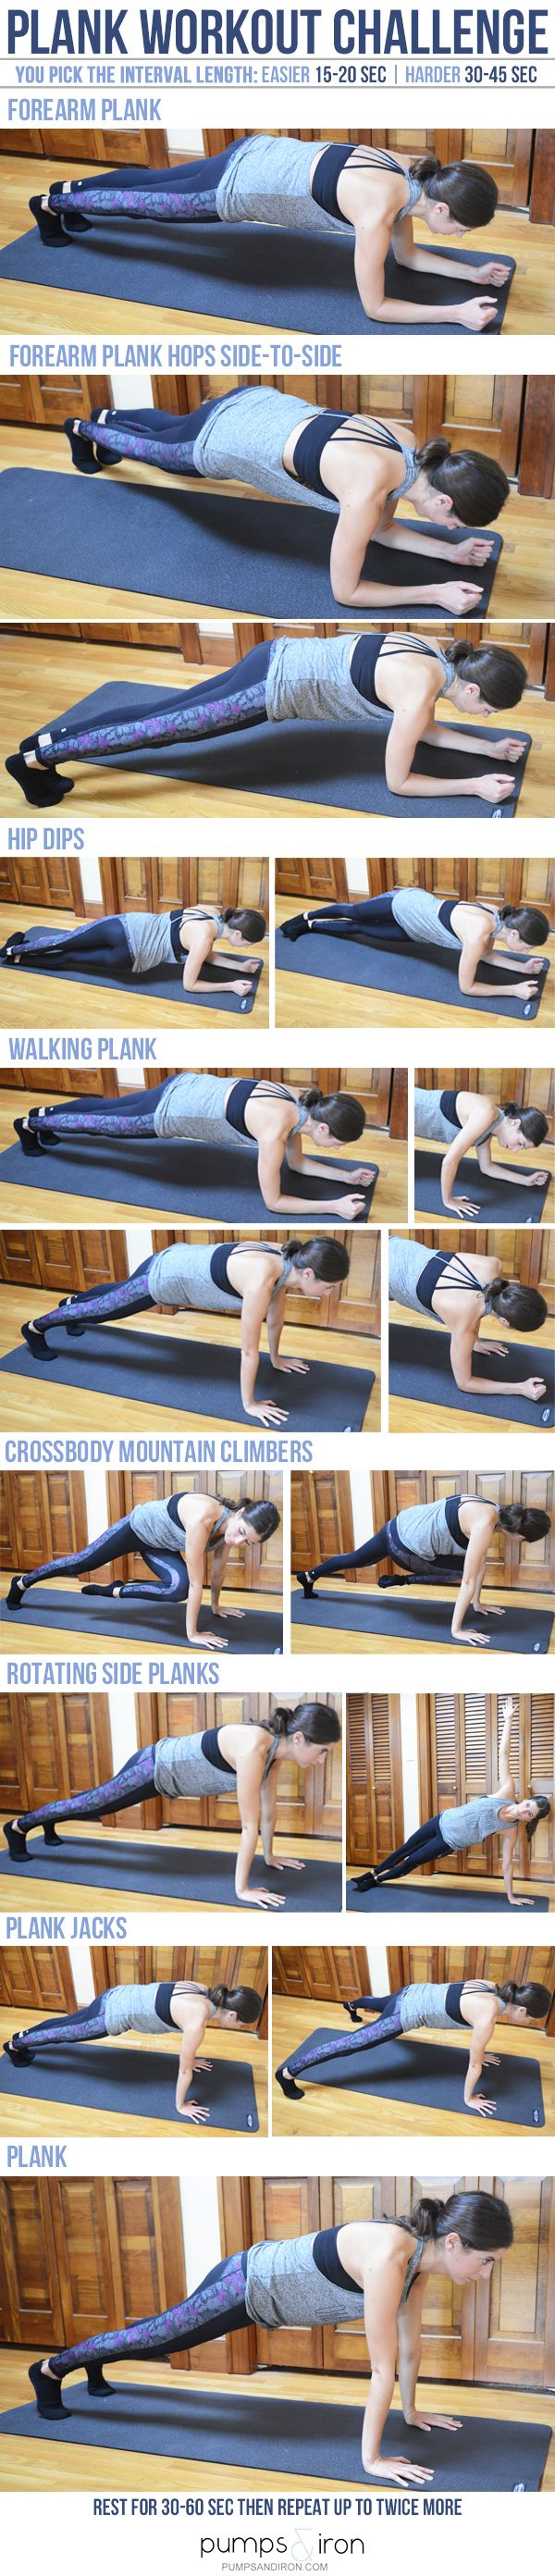 Plank Challenge Workout -- pick a starting interval length based on your ability and gradually increase it